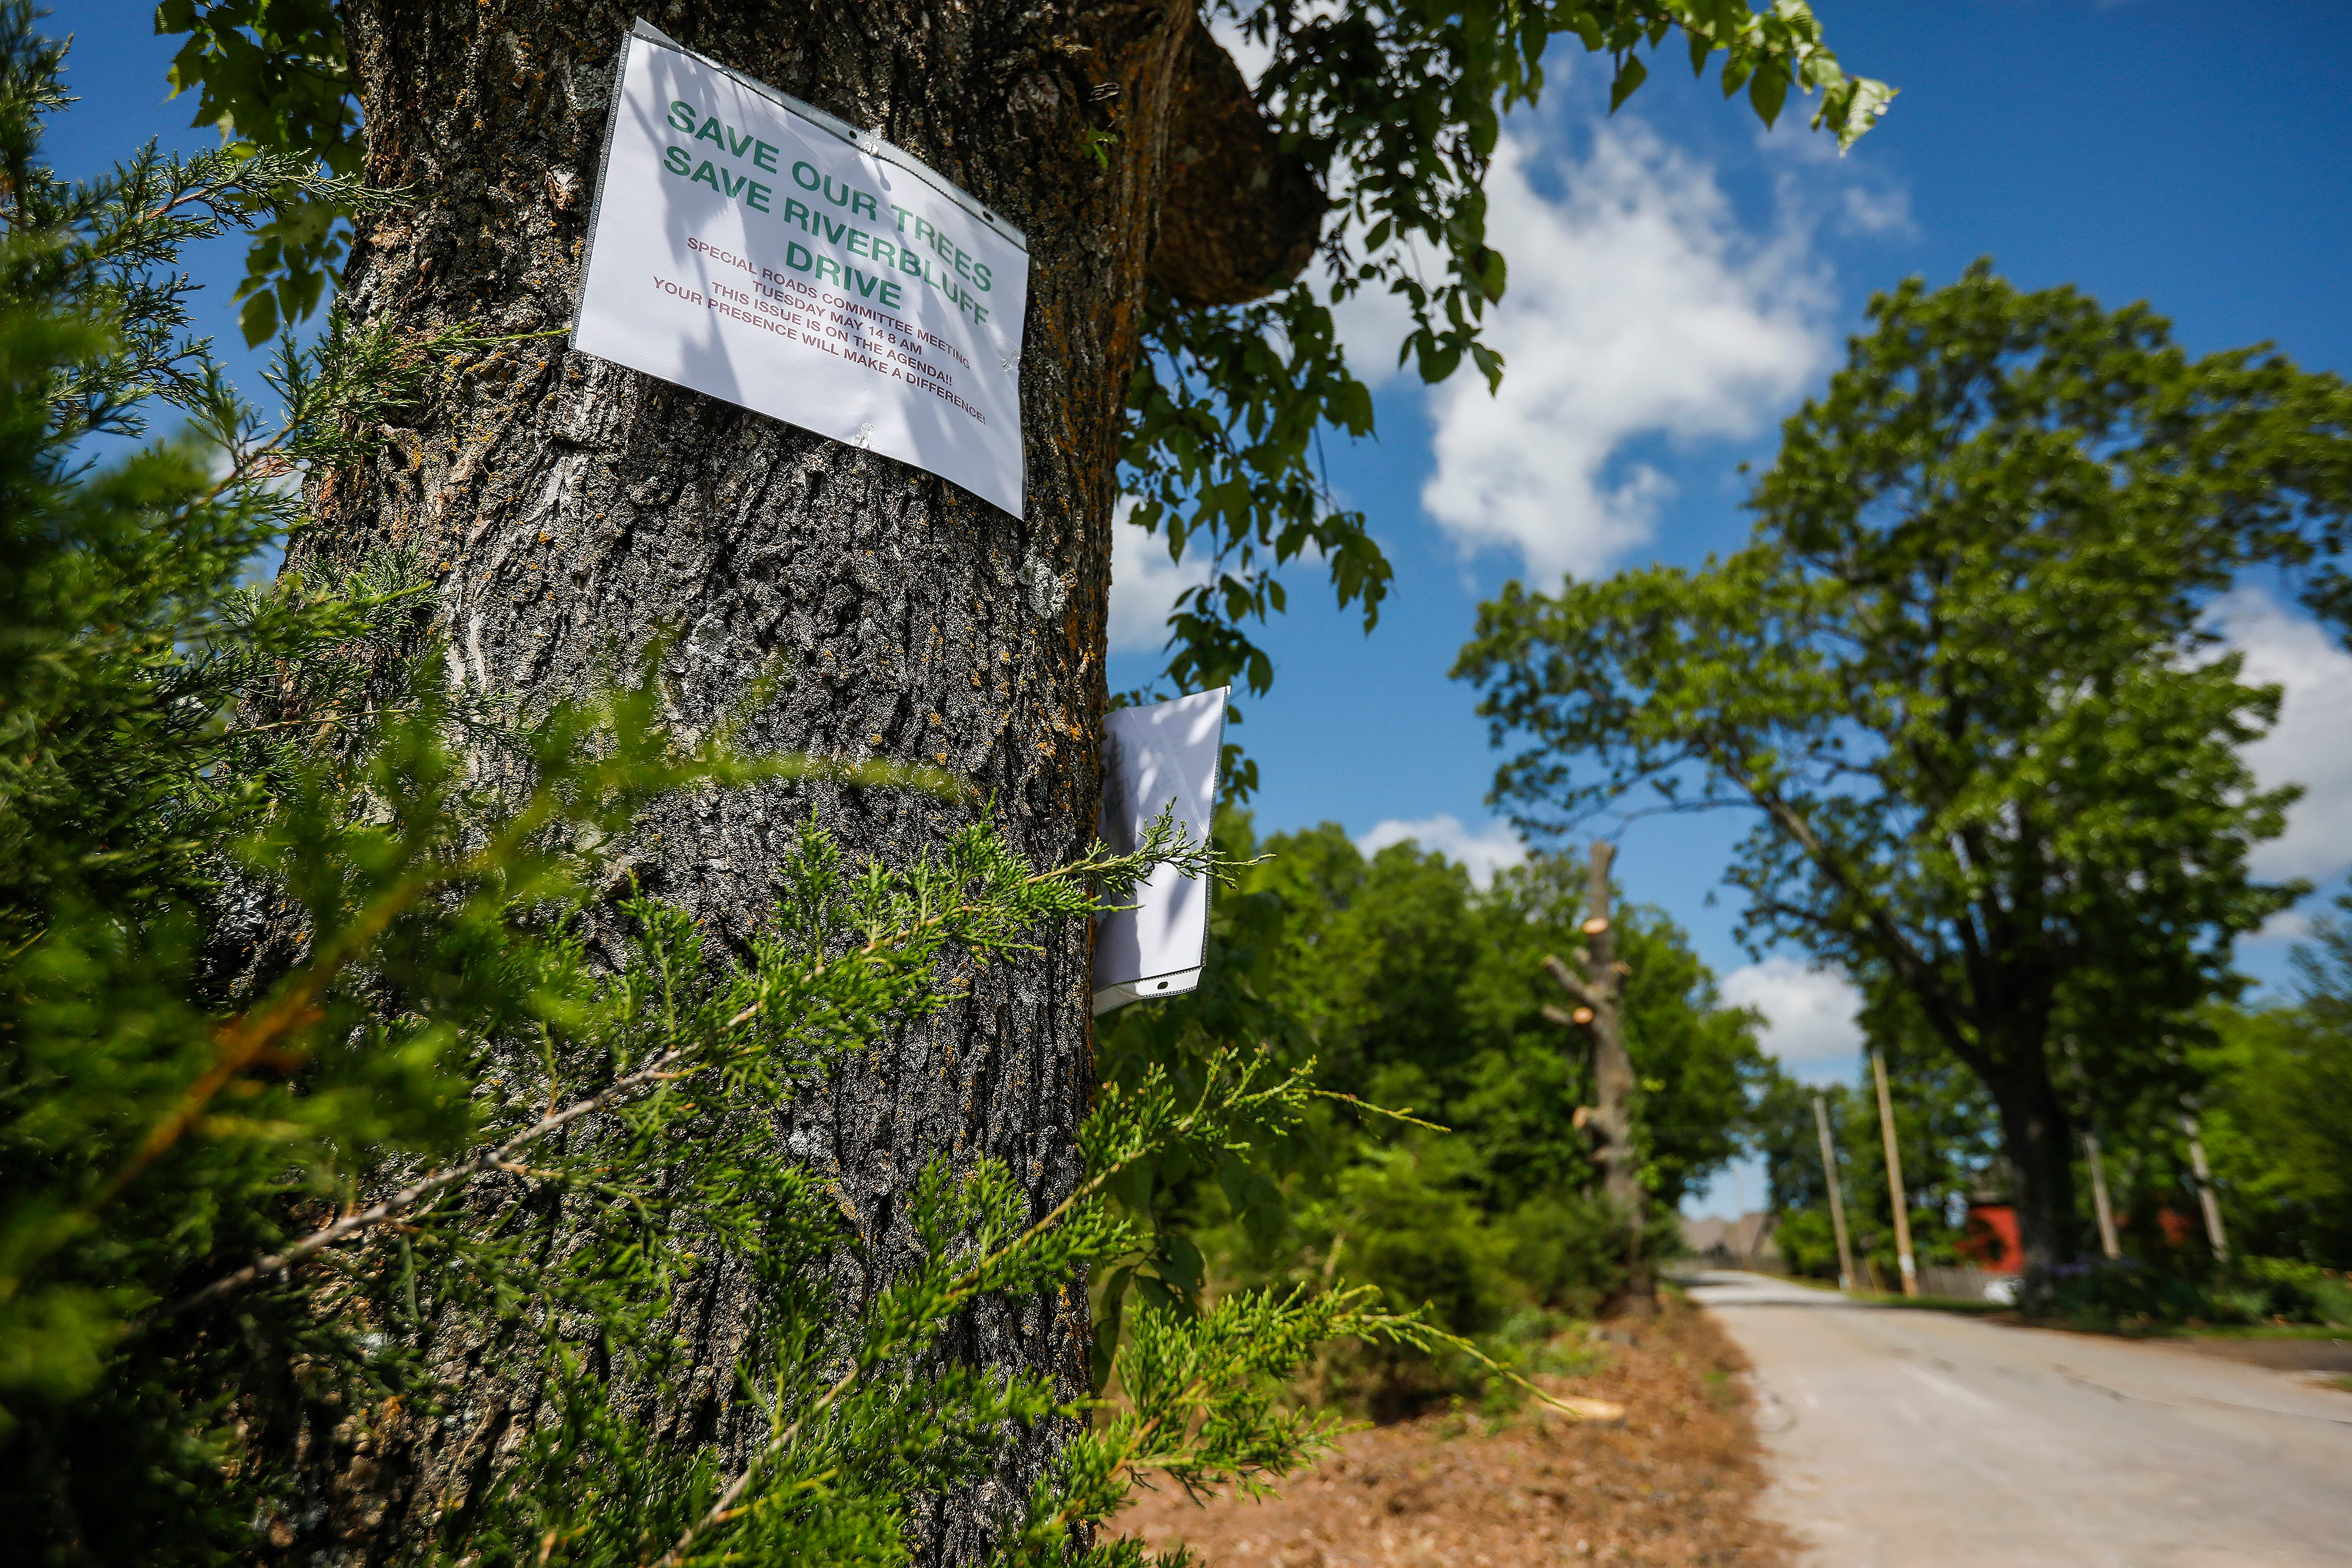 The Christian County special highway commission for Ozark has begun felling trees on River Bluff Drive in order to widen the road.